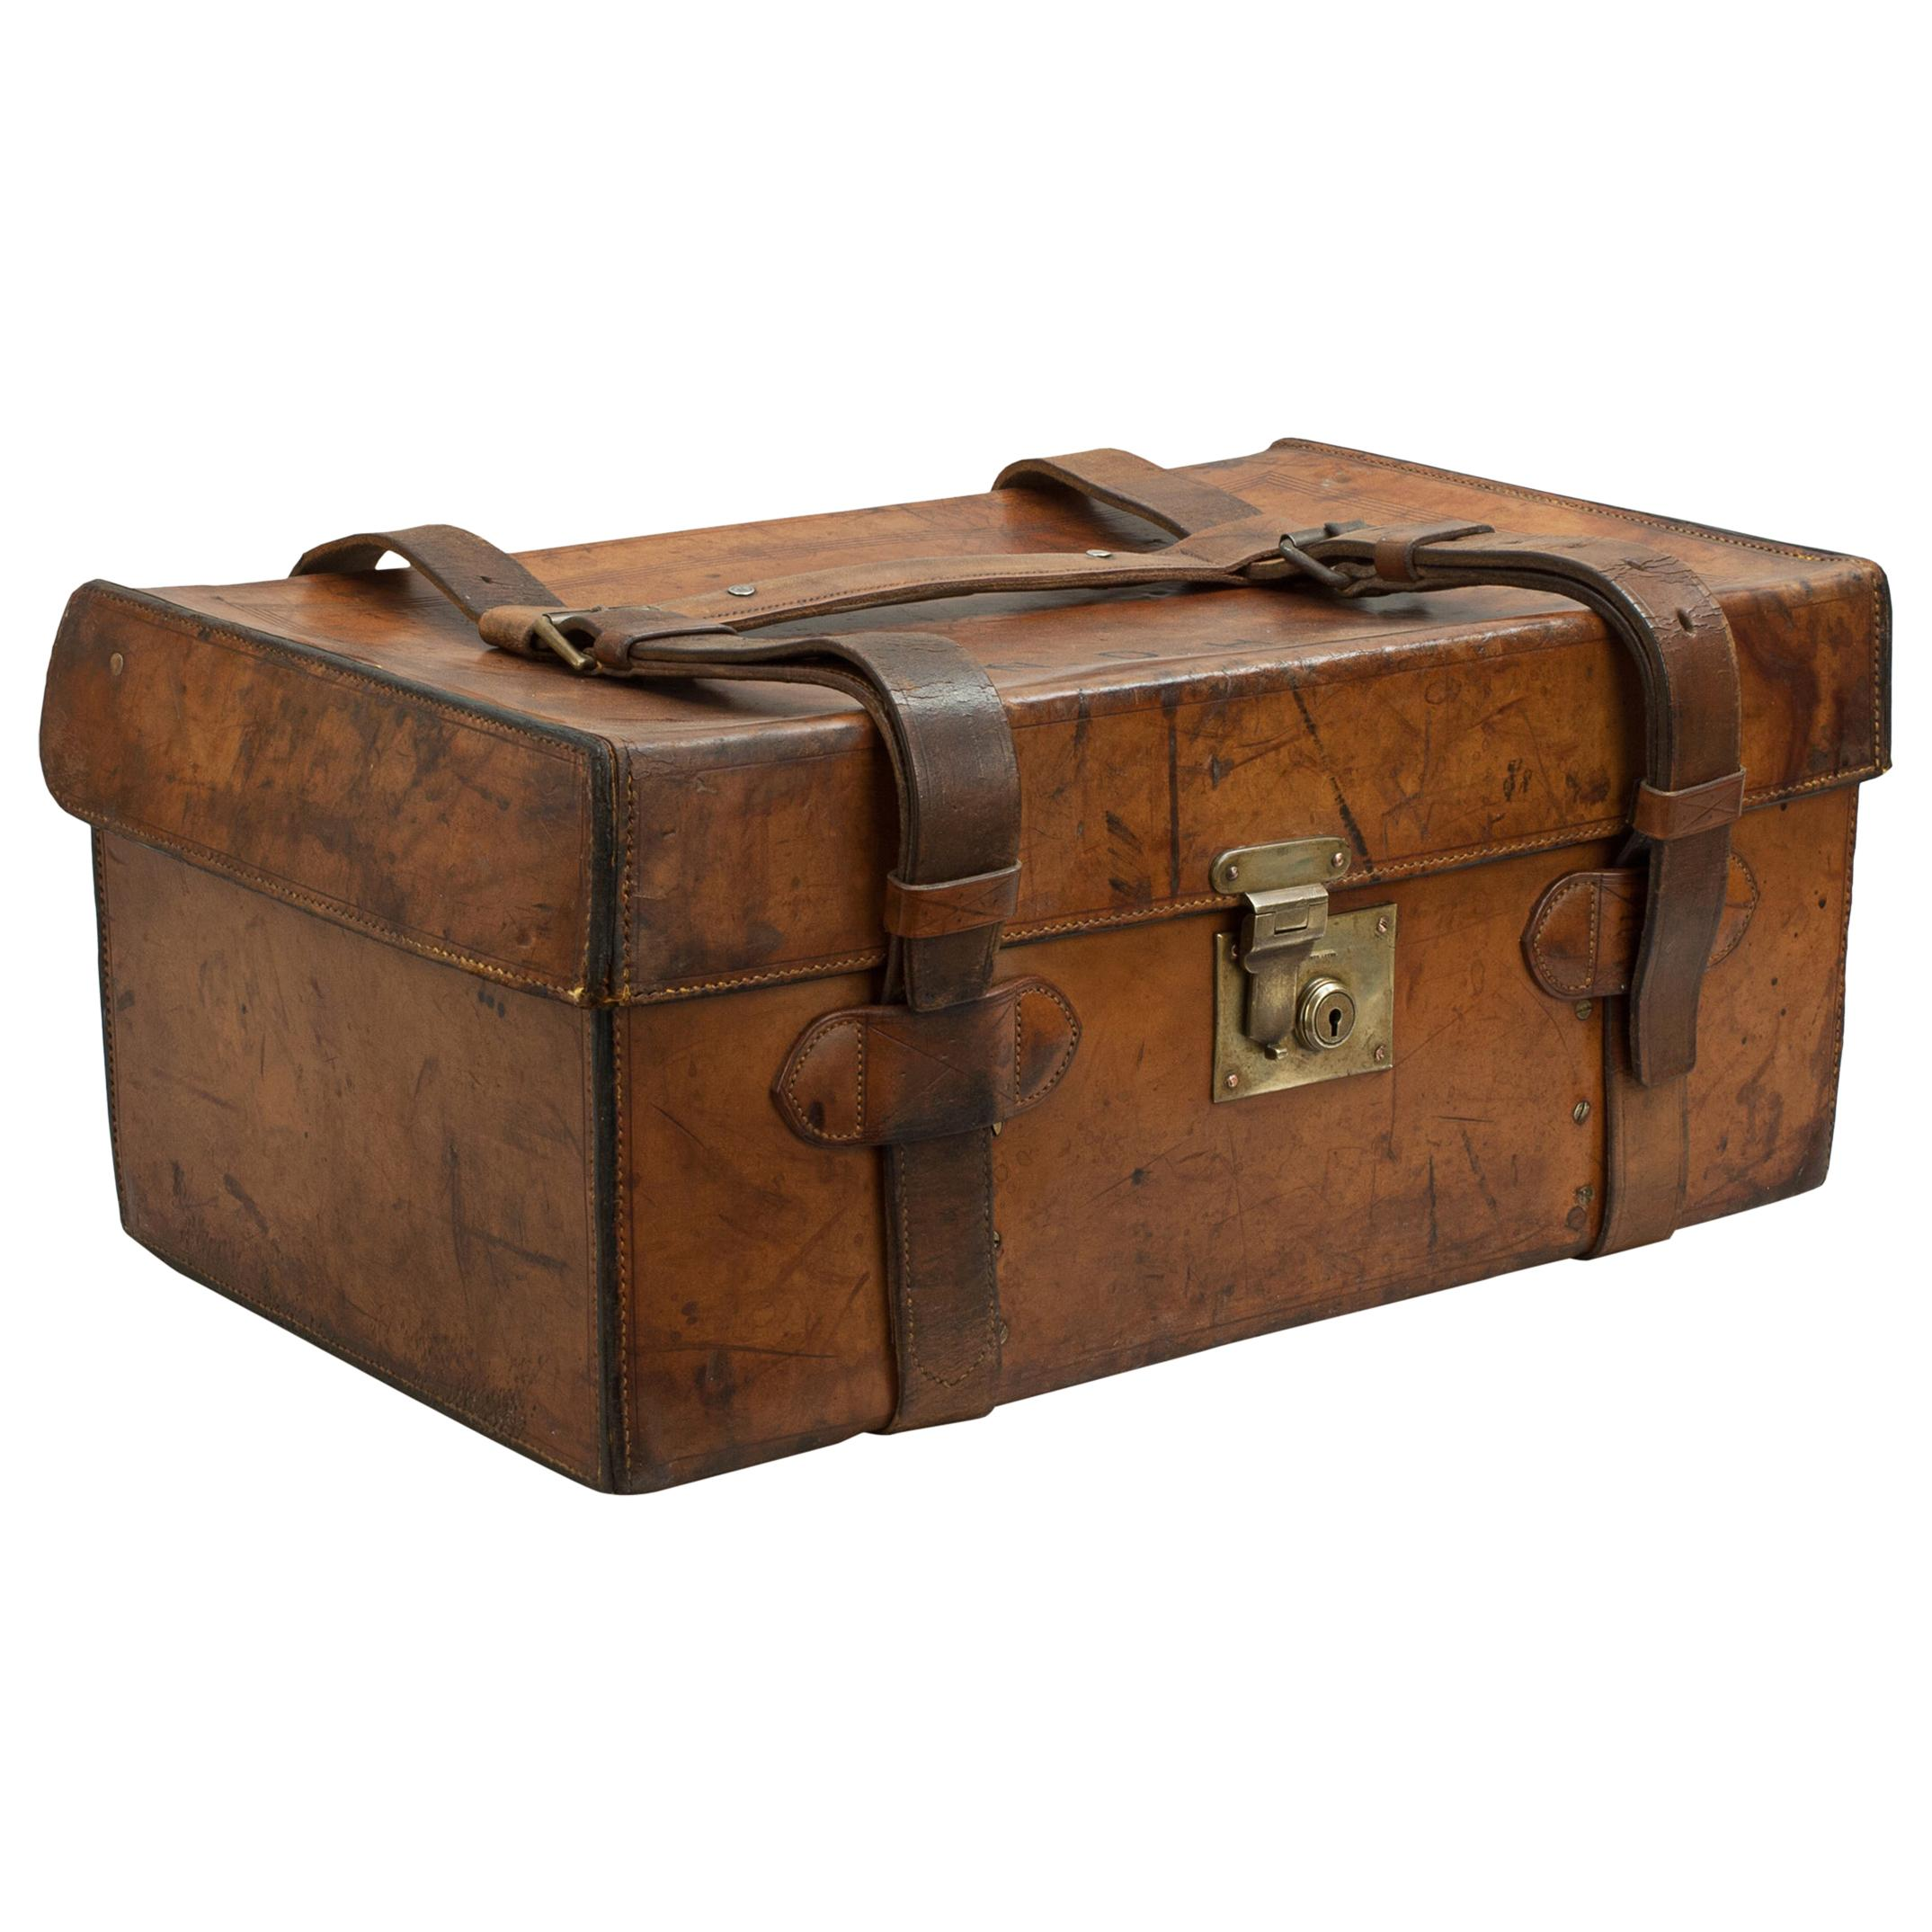 Antique Leather Fishing Trunk by Farlow